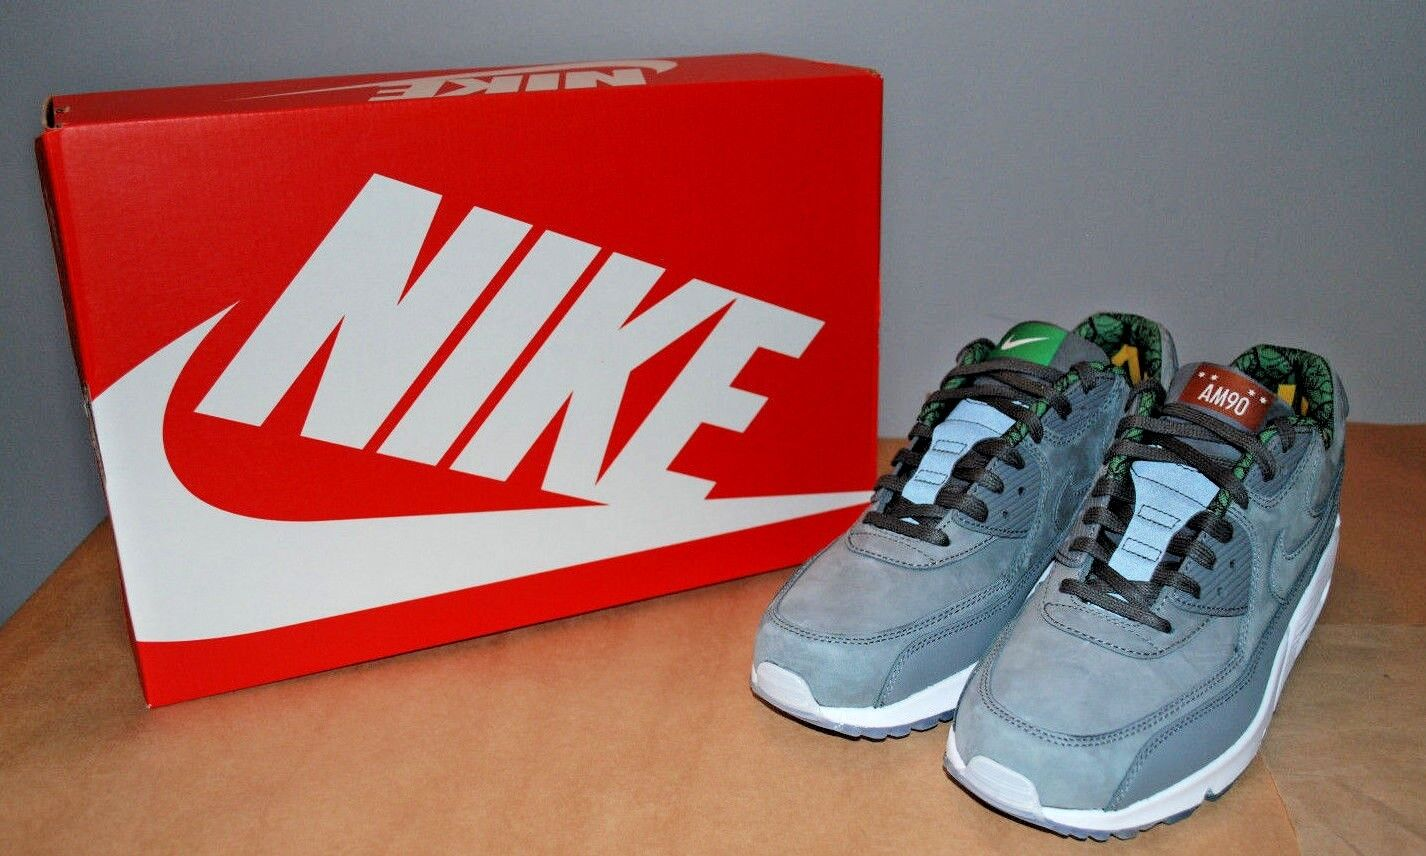 Nike air max 90 qs chicago cool grey / cool grey grigio scuro 836302-002